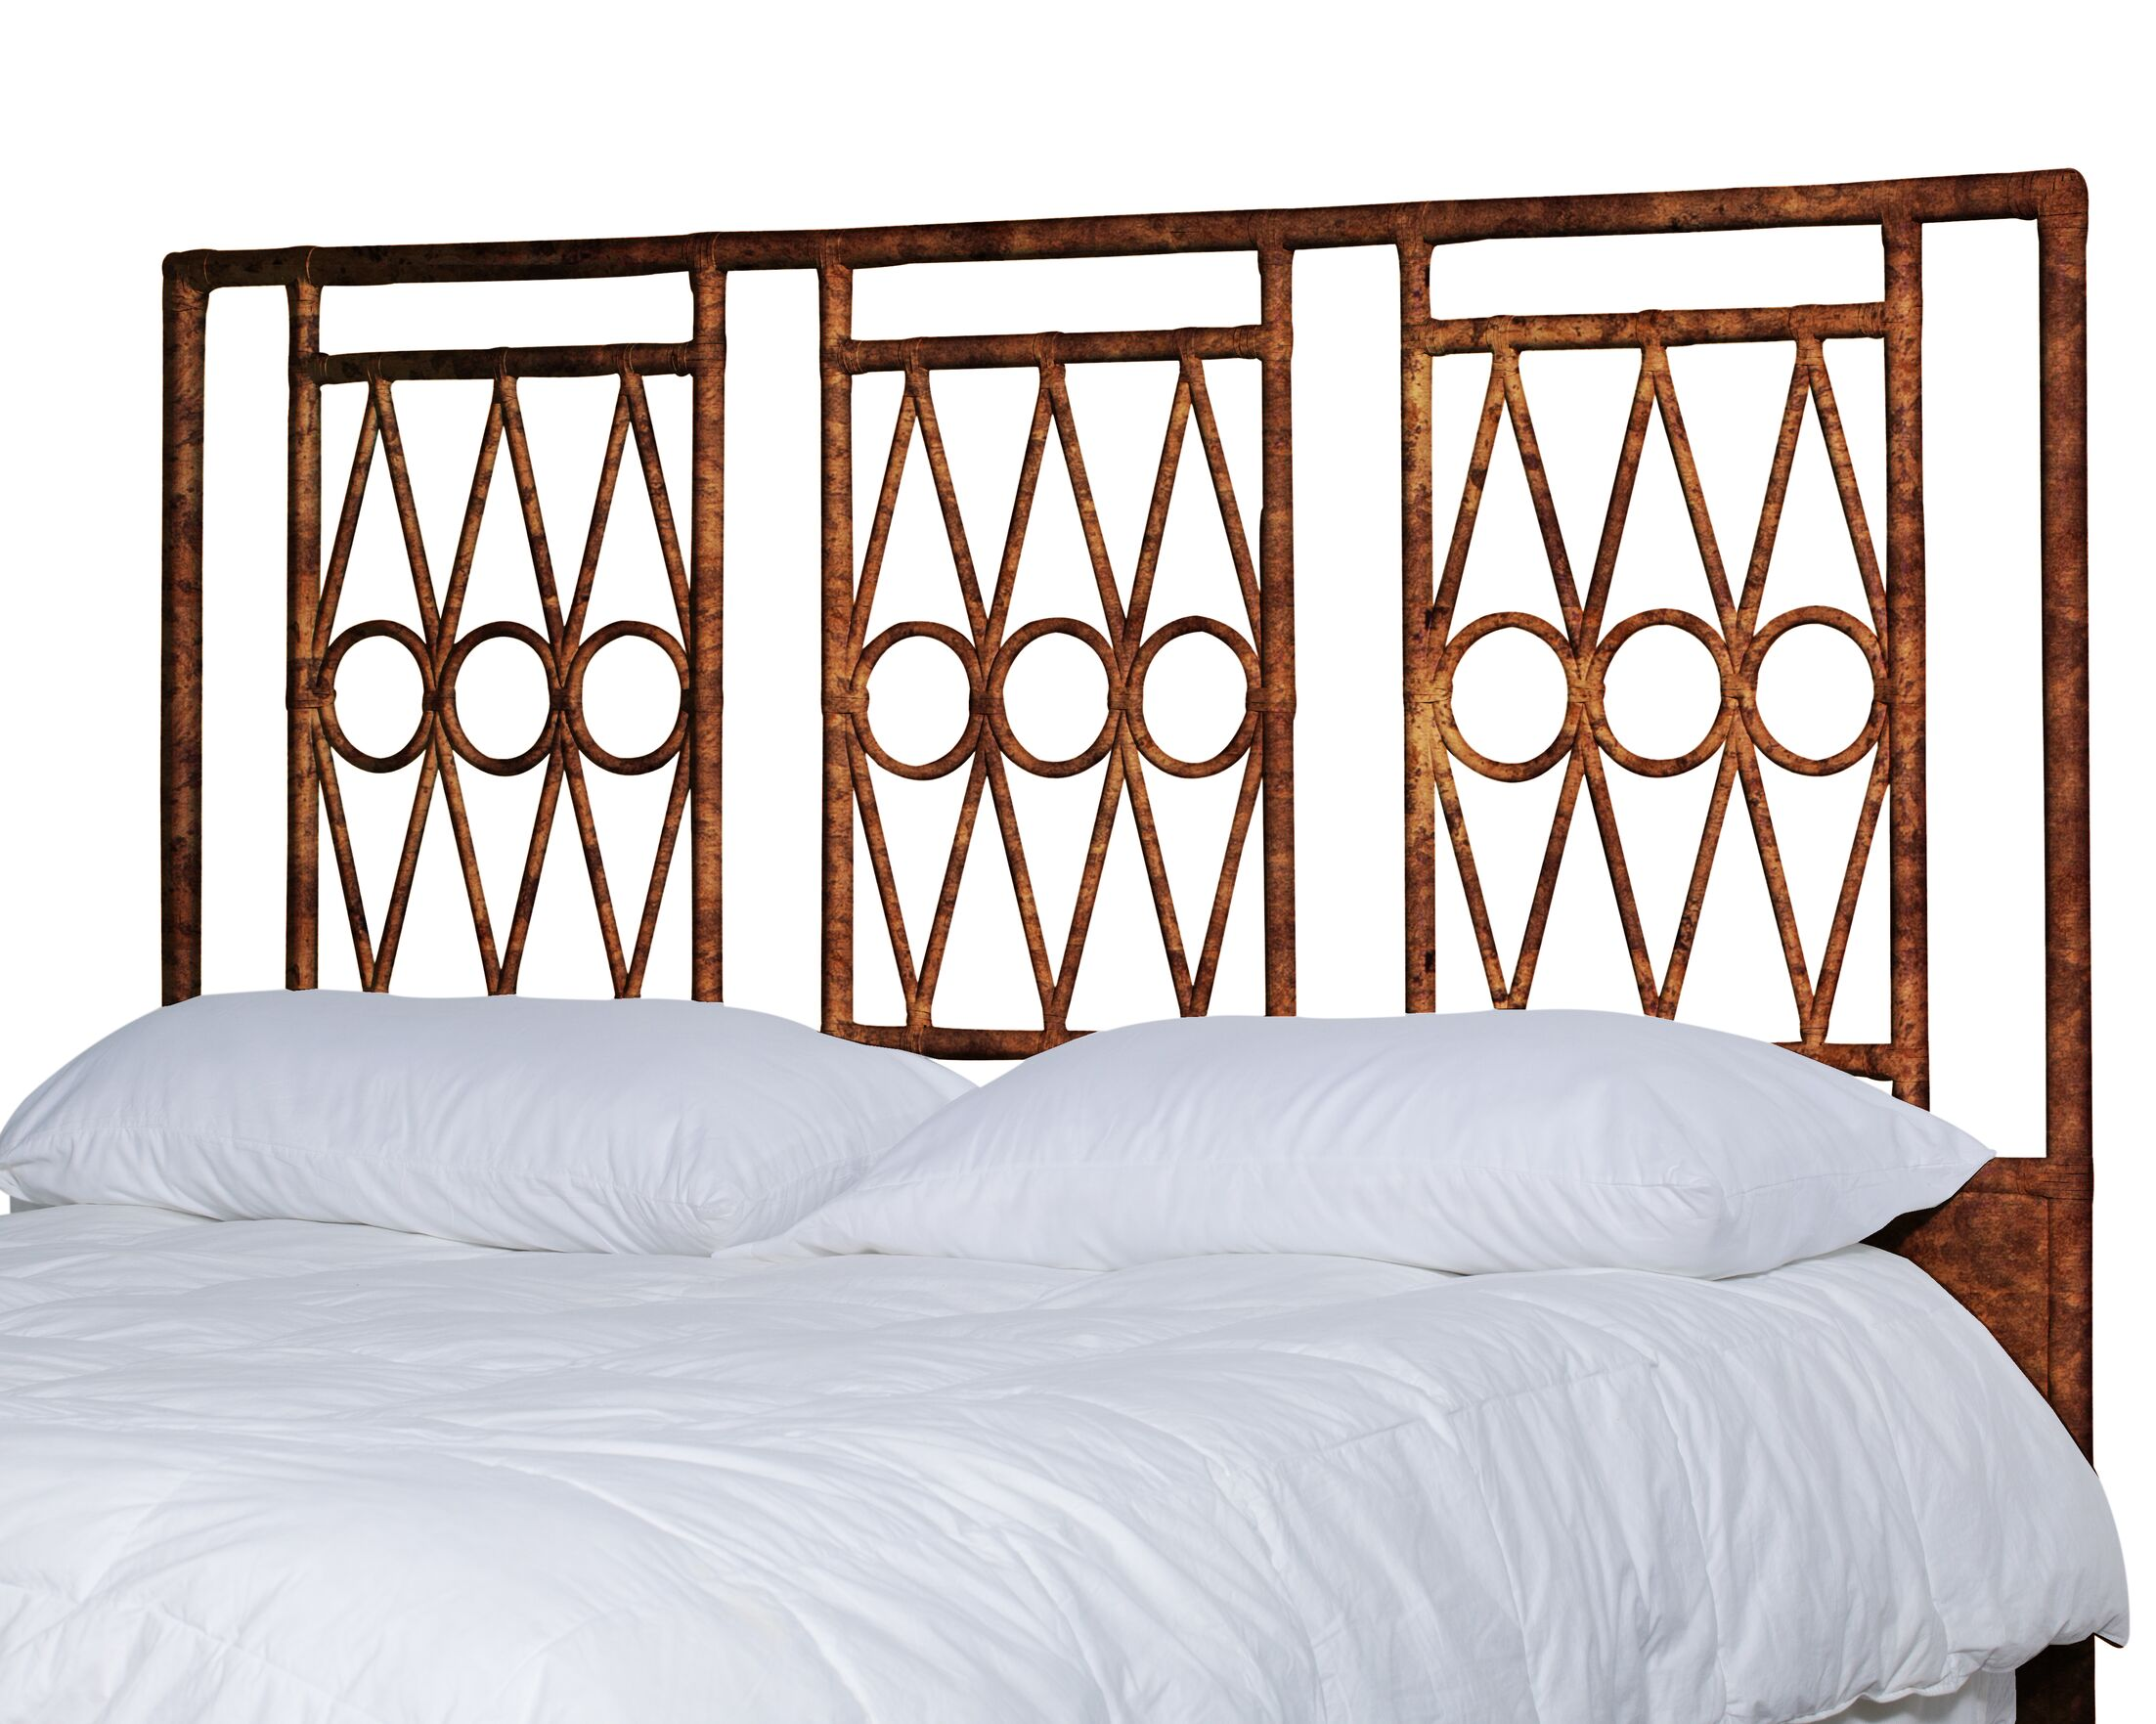 Michelle Headboard Size: King, Color: Tortoise shell